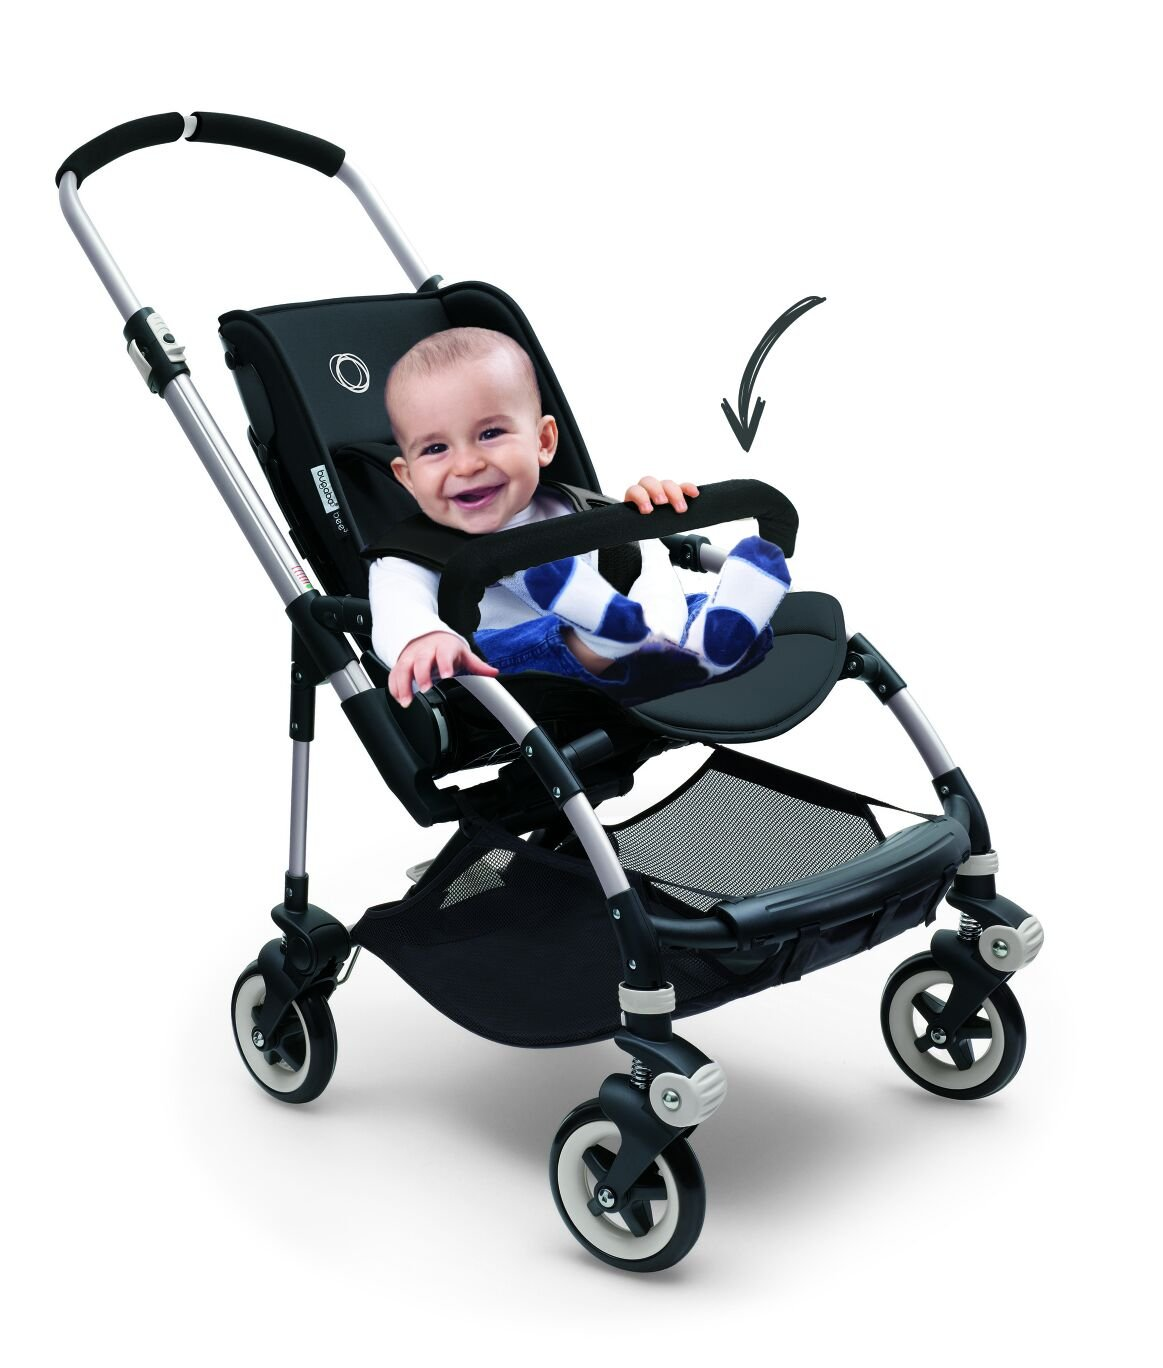 Bar That Fits the Bugaboo Bee, Bee Plus, Bee 3 & Bee 5. (Front Facing Only As Seen in Photo)